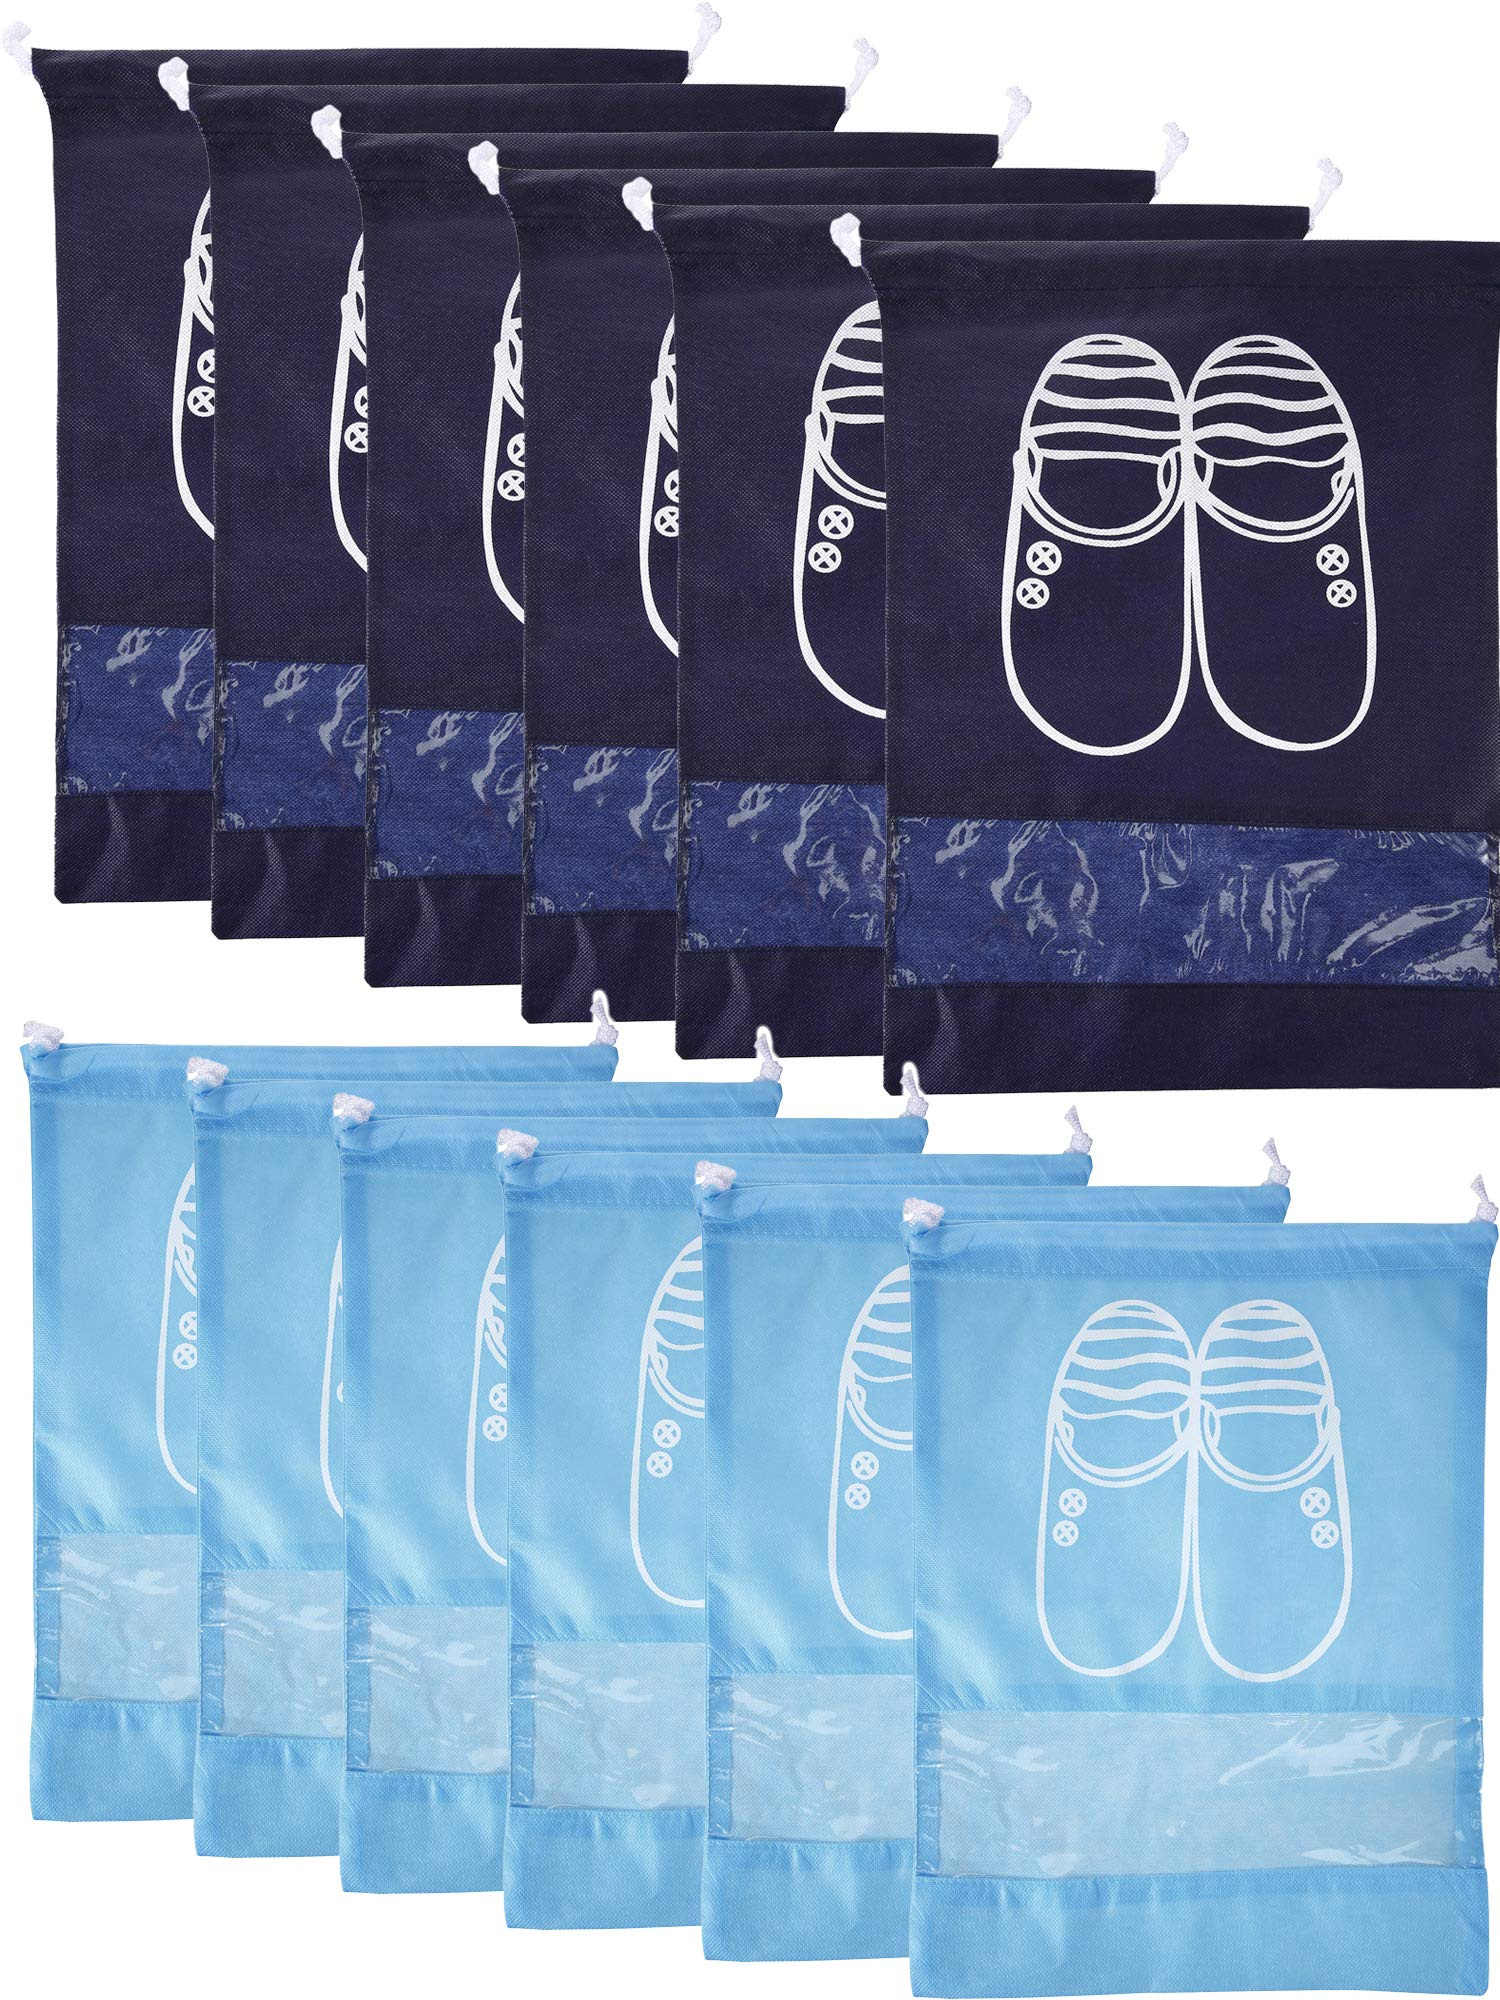 Chengu 12 Pieces 2 Sizes Shoes Bag Shoe Organizer Bag Storage Dust-proof Shoe Bags with Drawstring for Women and Men (Sky Blue, Navy Blue)